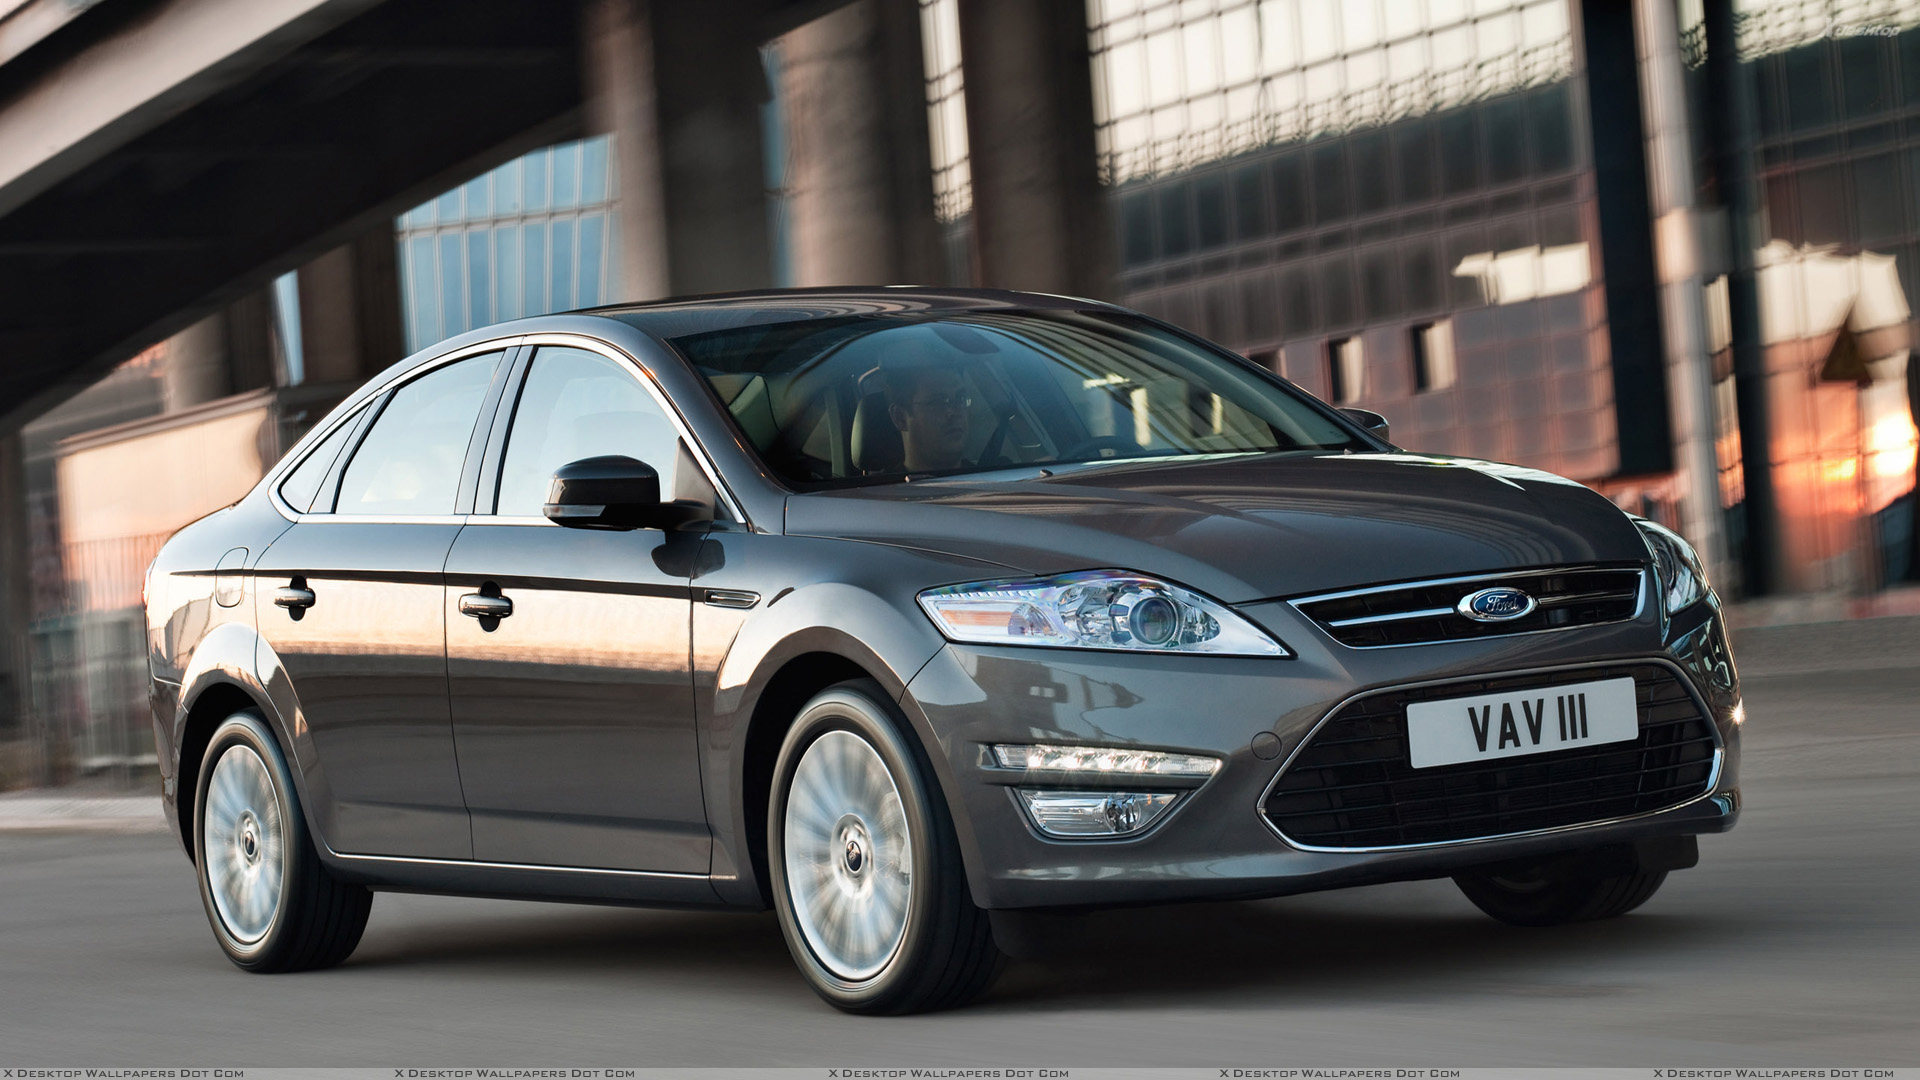 Ford Mondeo Wallpapers Photos Images in HD 1920x1080